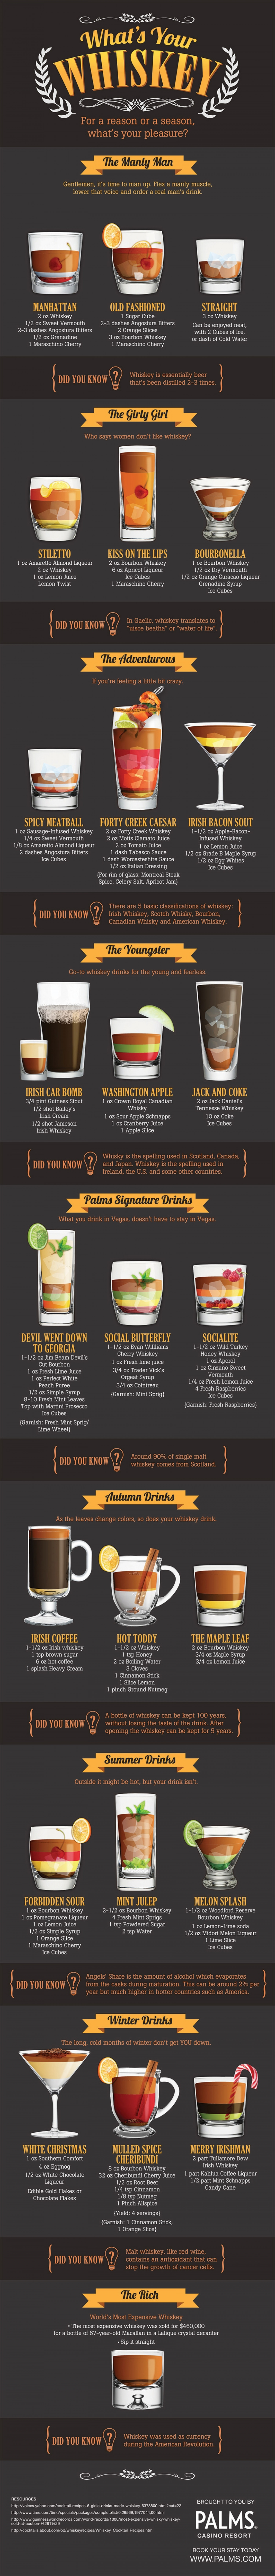 What's Your Whiskey? Infographic